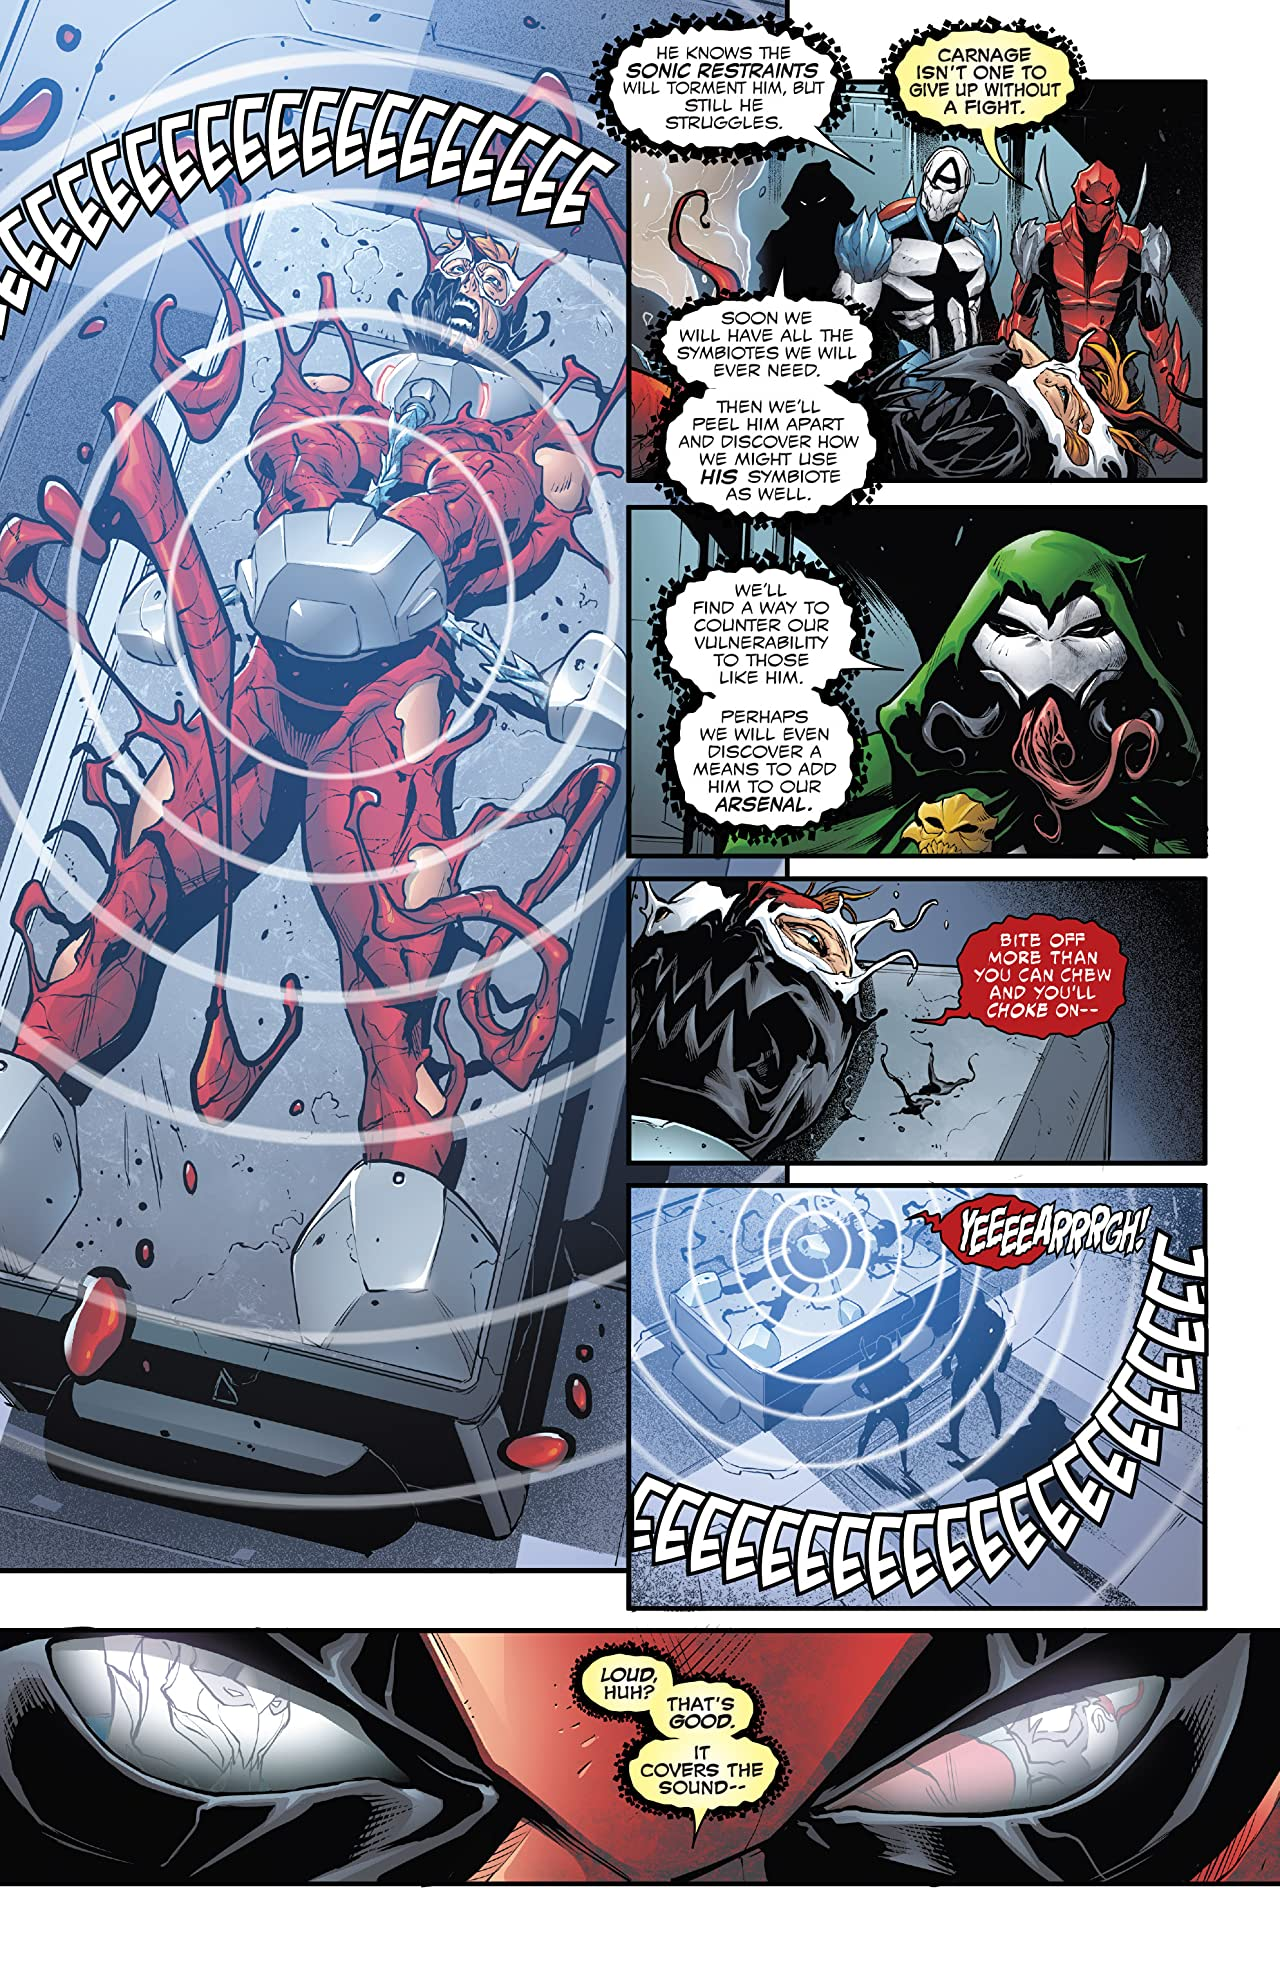 Venomverse (2017) #5 (of 5)